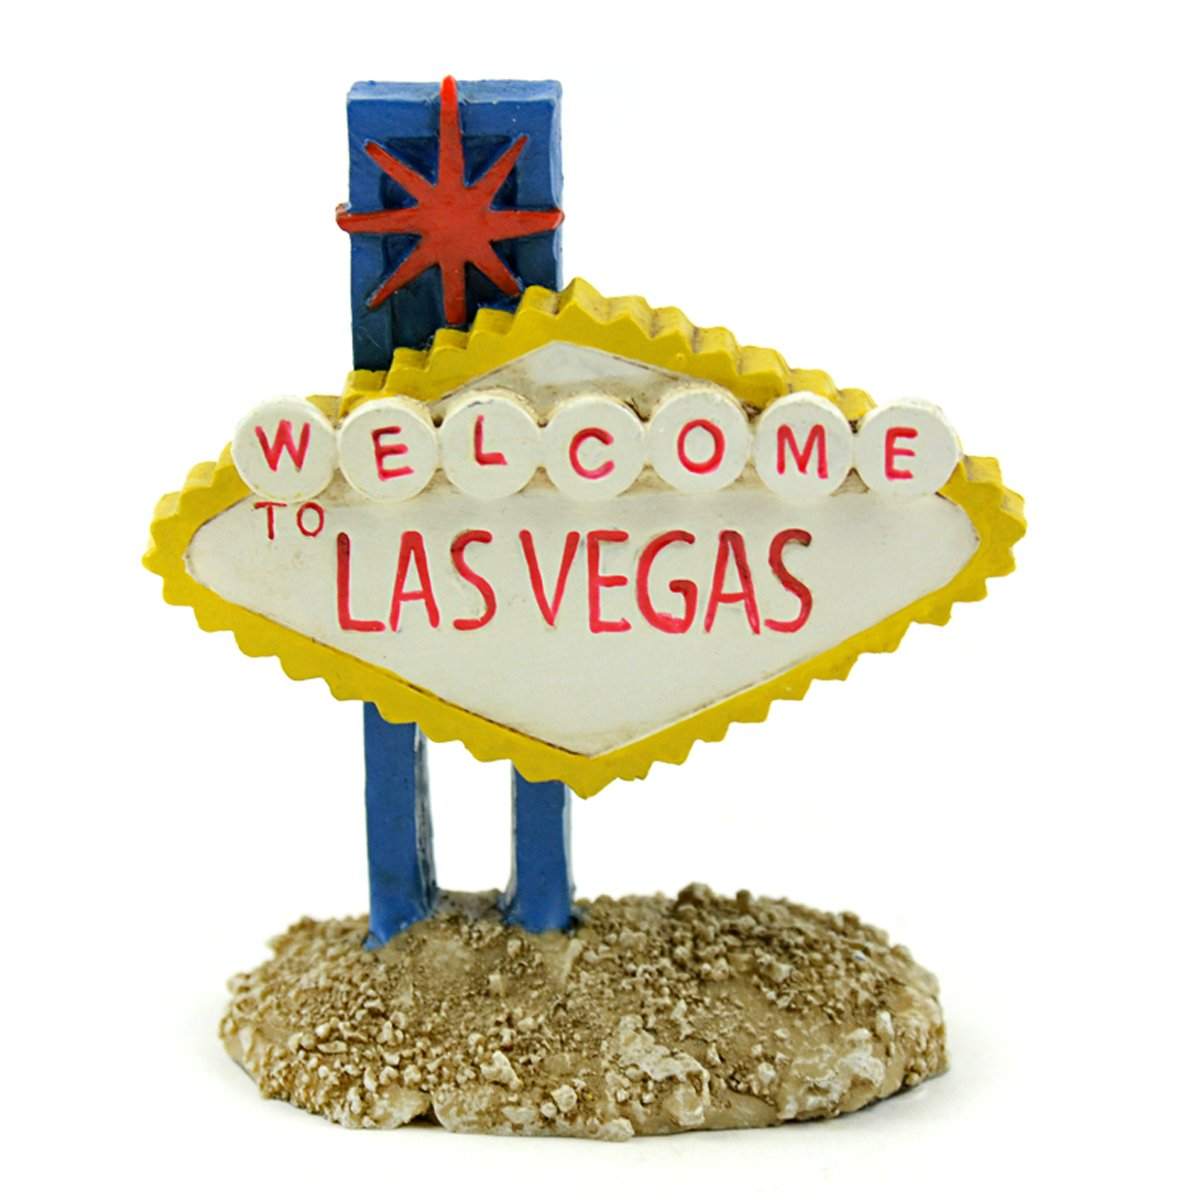 Fairy Garden Sets in Resin with Fine Detailing (Welcome to Las Vegas Sign Camper and Gnomes) by Clever Home (Image #4)